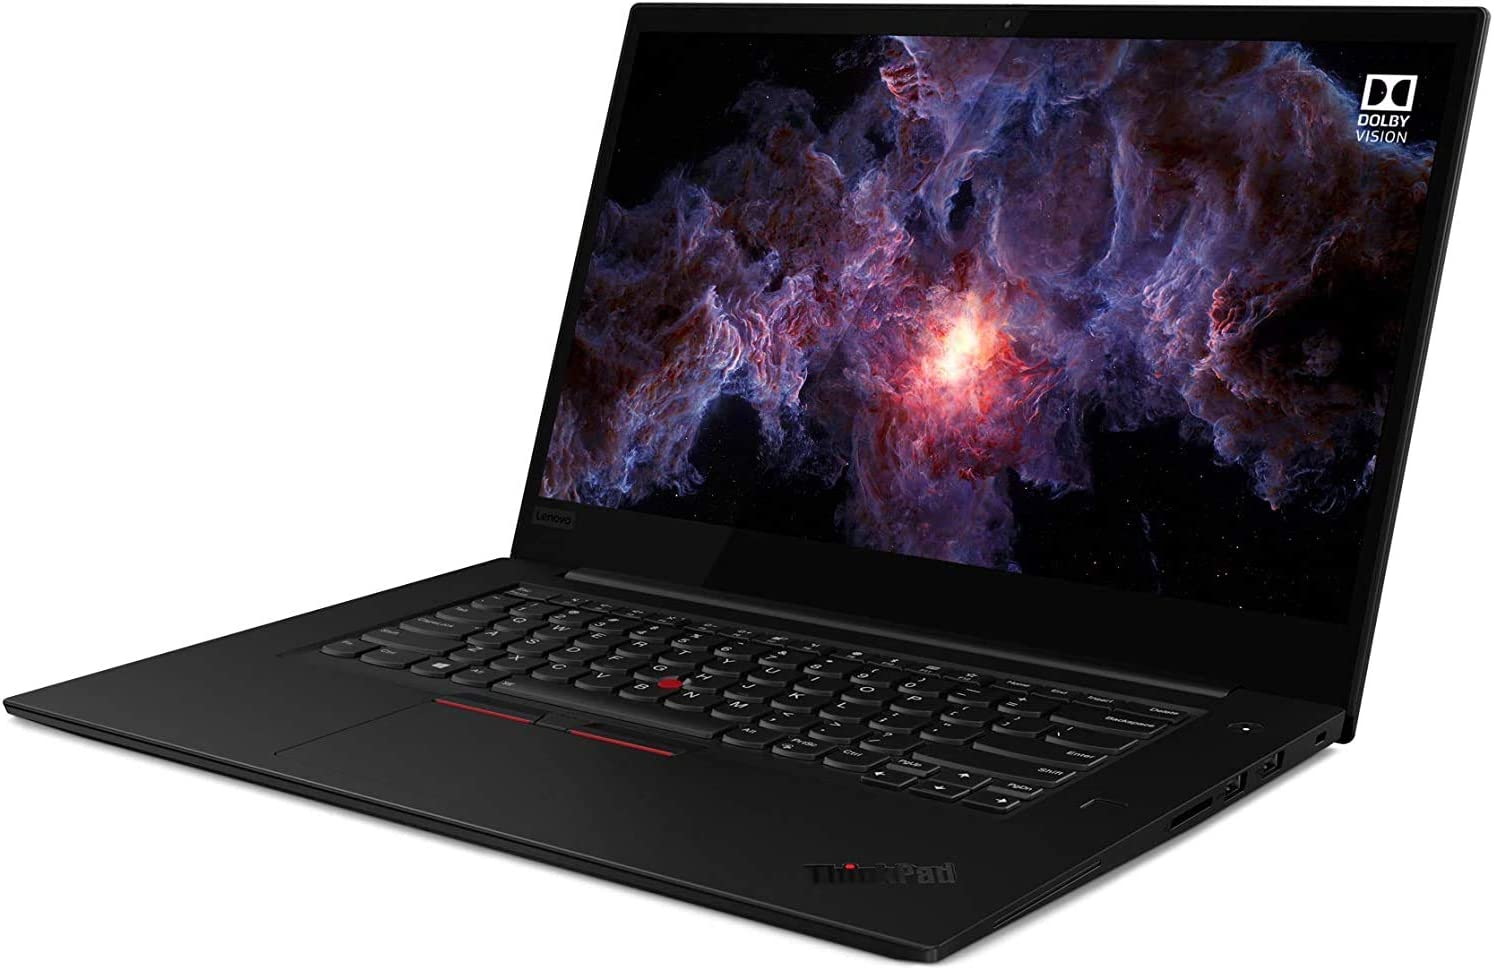 "ThinkPad X1 Extreme Gen 2 Laptop 9th Gen Intel Core i9-9880H vPro 15.6"" FHD IPS, Anti-Glare Display HDR 400, 500 nits GTX 1650 4GB Best Notebook Stylus Pen Light (1TB SSD